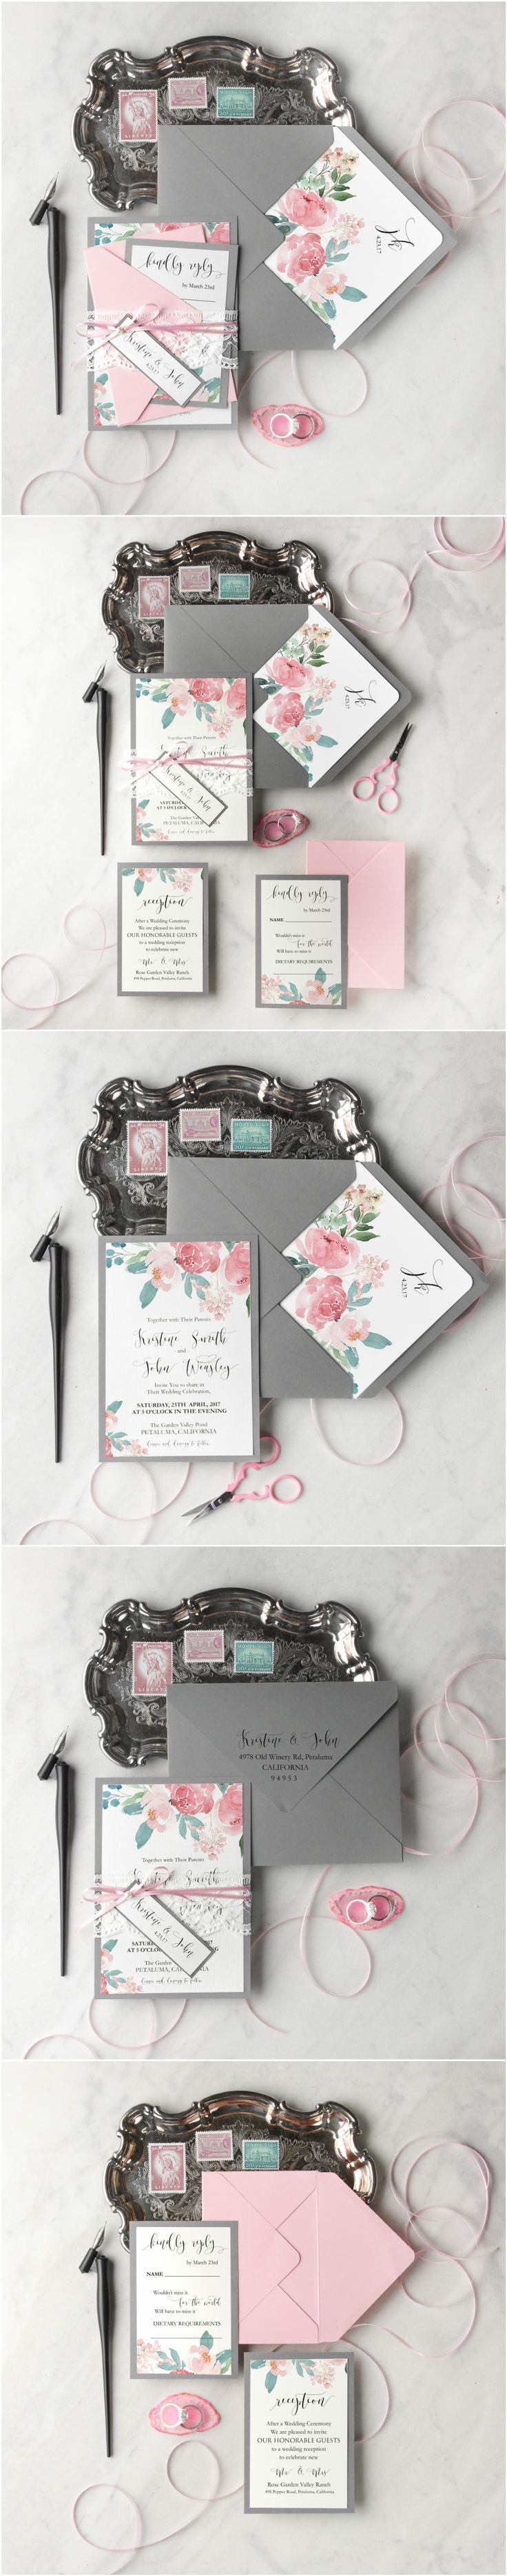 236 best Wedding Invitations images on Pinterest | Wedding ideas ...